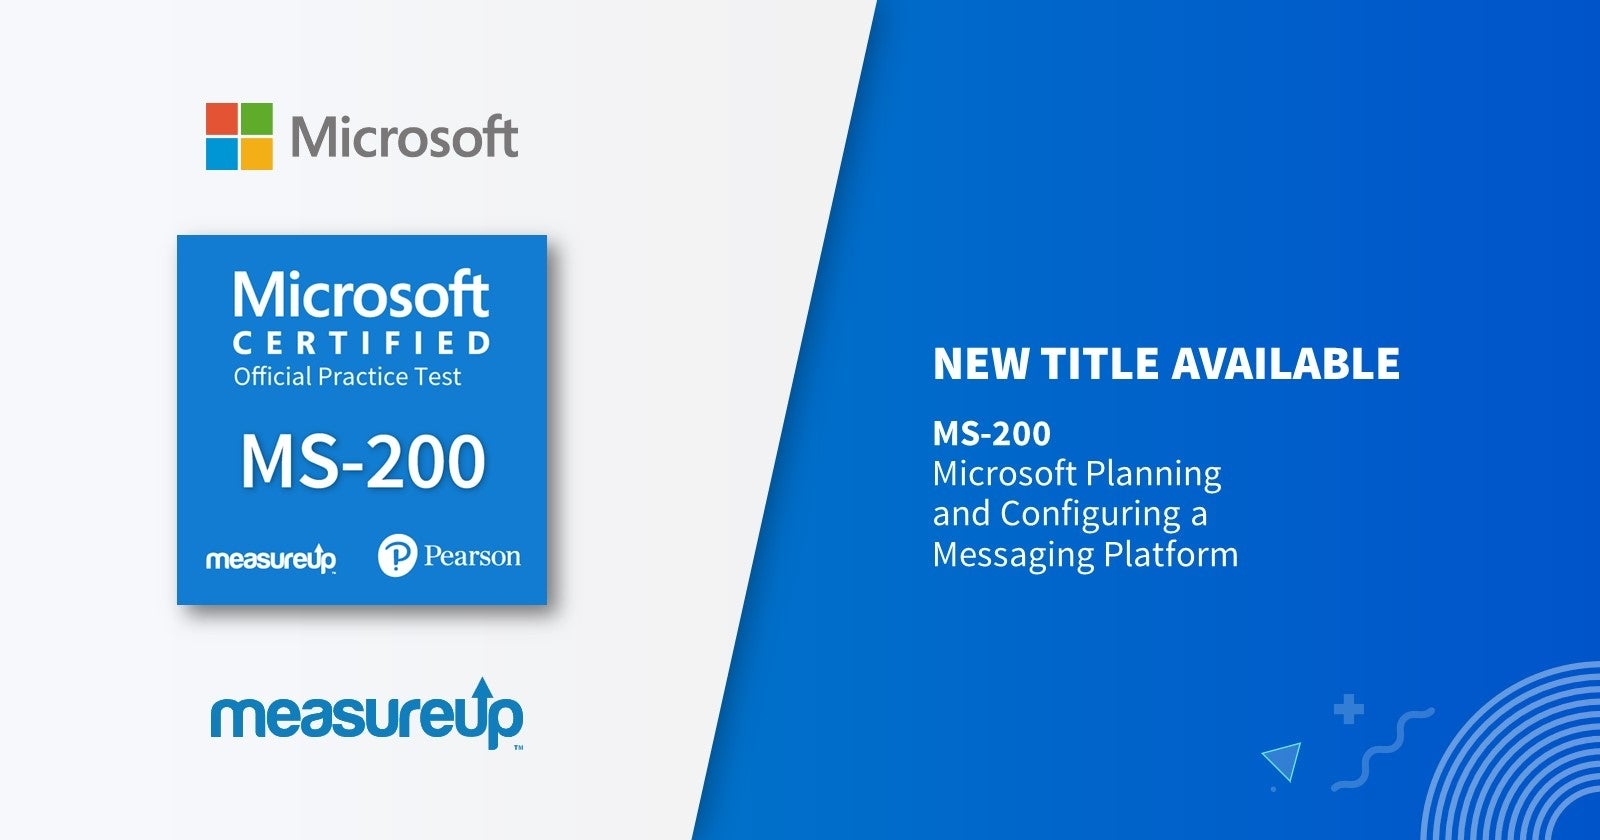 MS-200: Microsoft Planning and Configuring a Messaging Platform